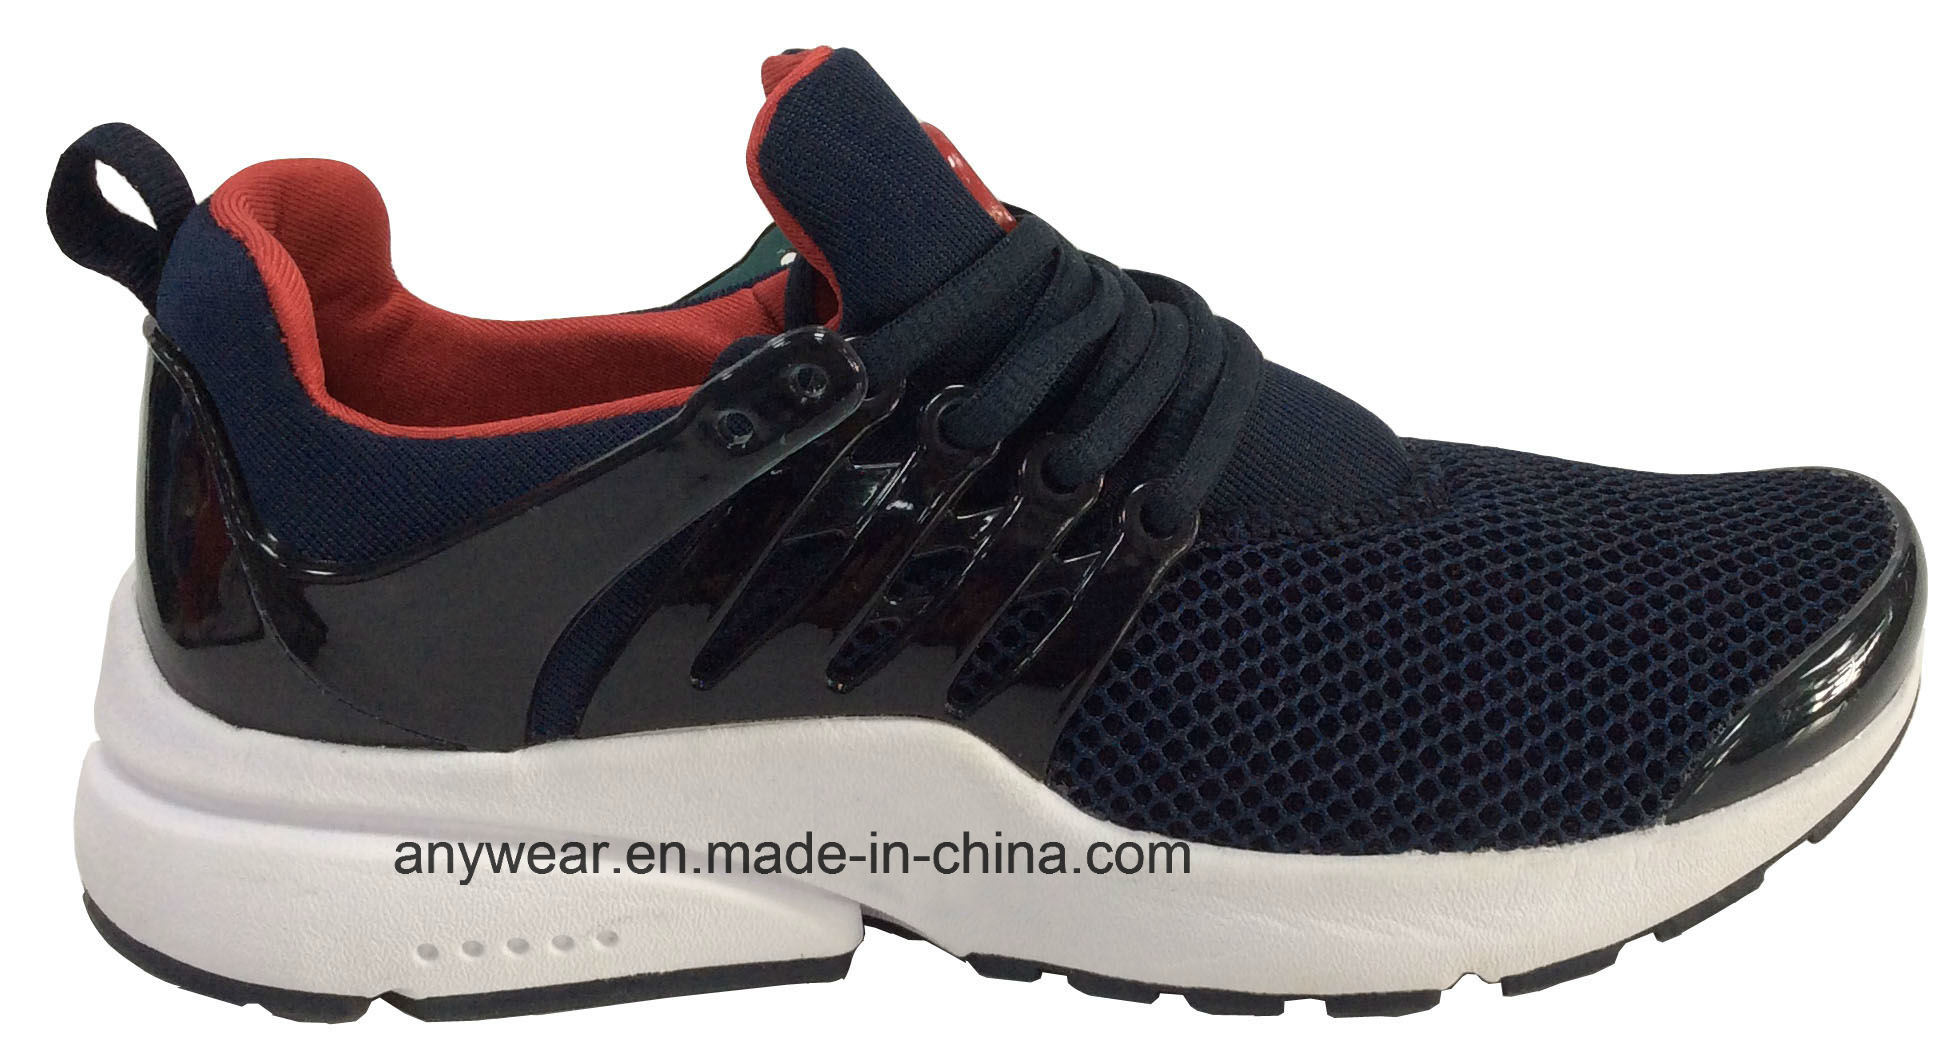 Men Comfort Walking Running Sports Shoes (16740)